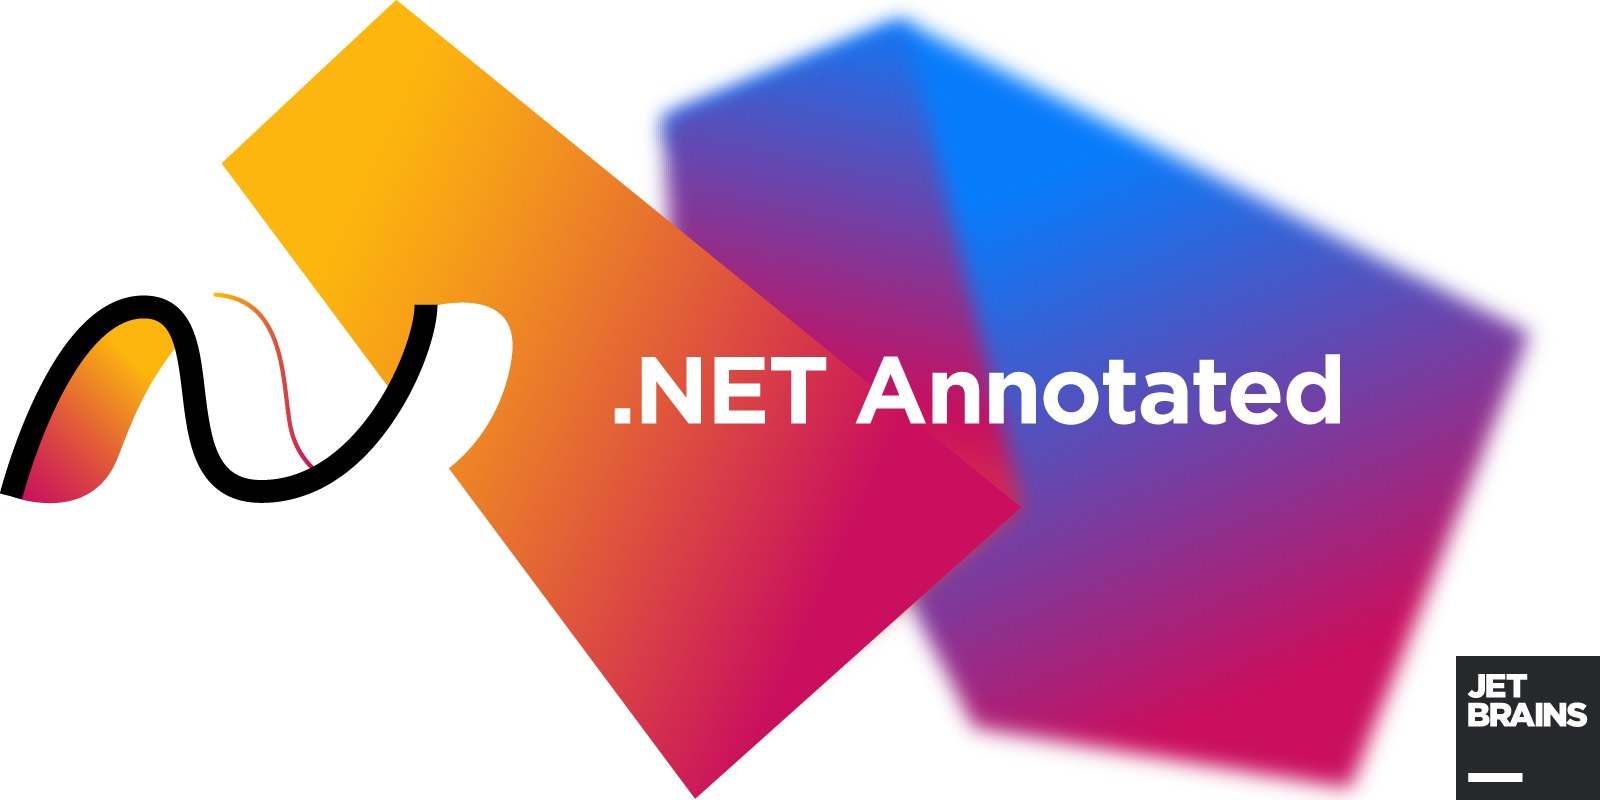 .NET Annotated Monthly newsletter by JetBrains!